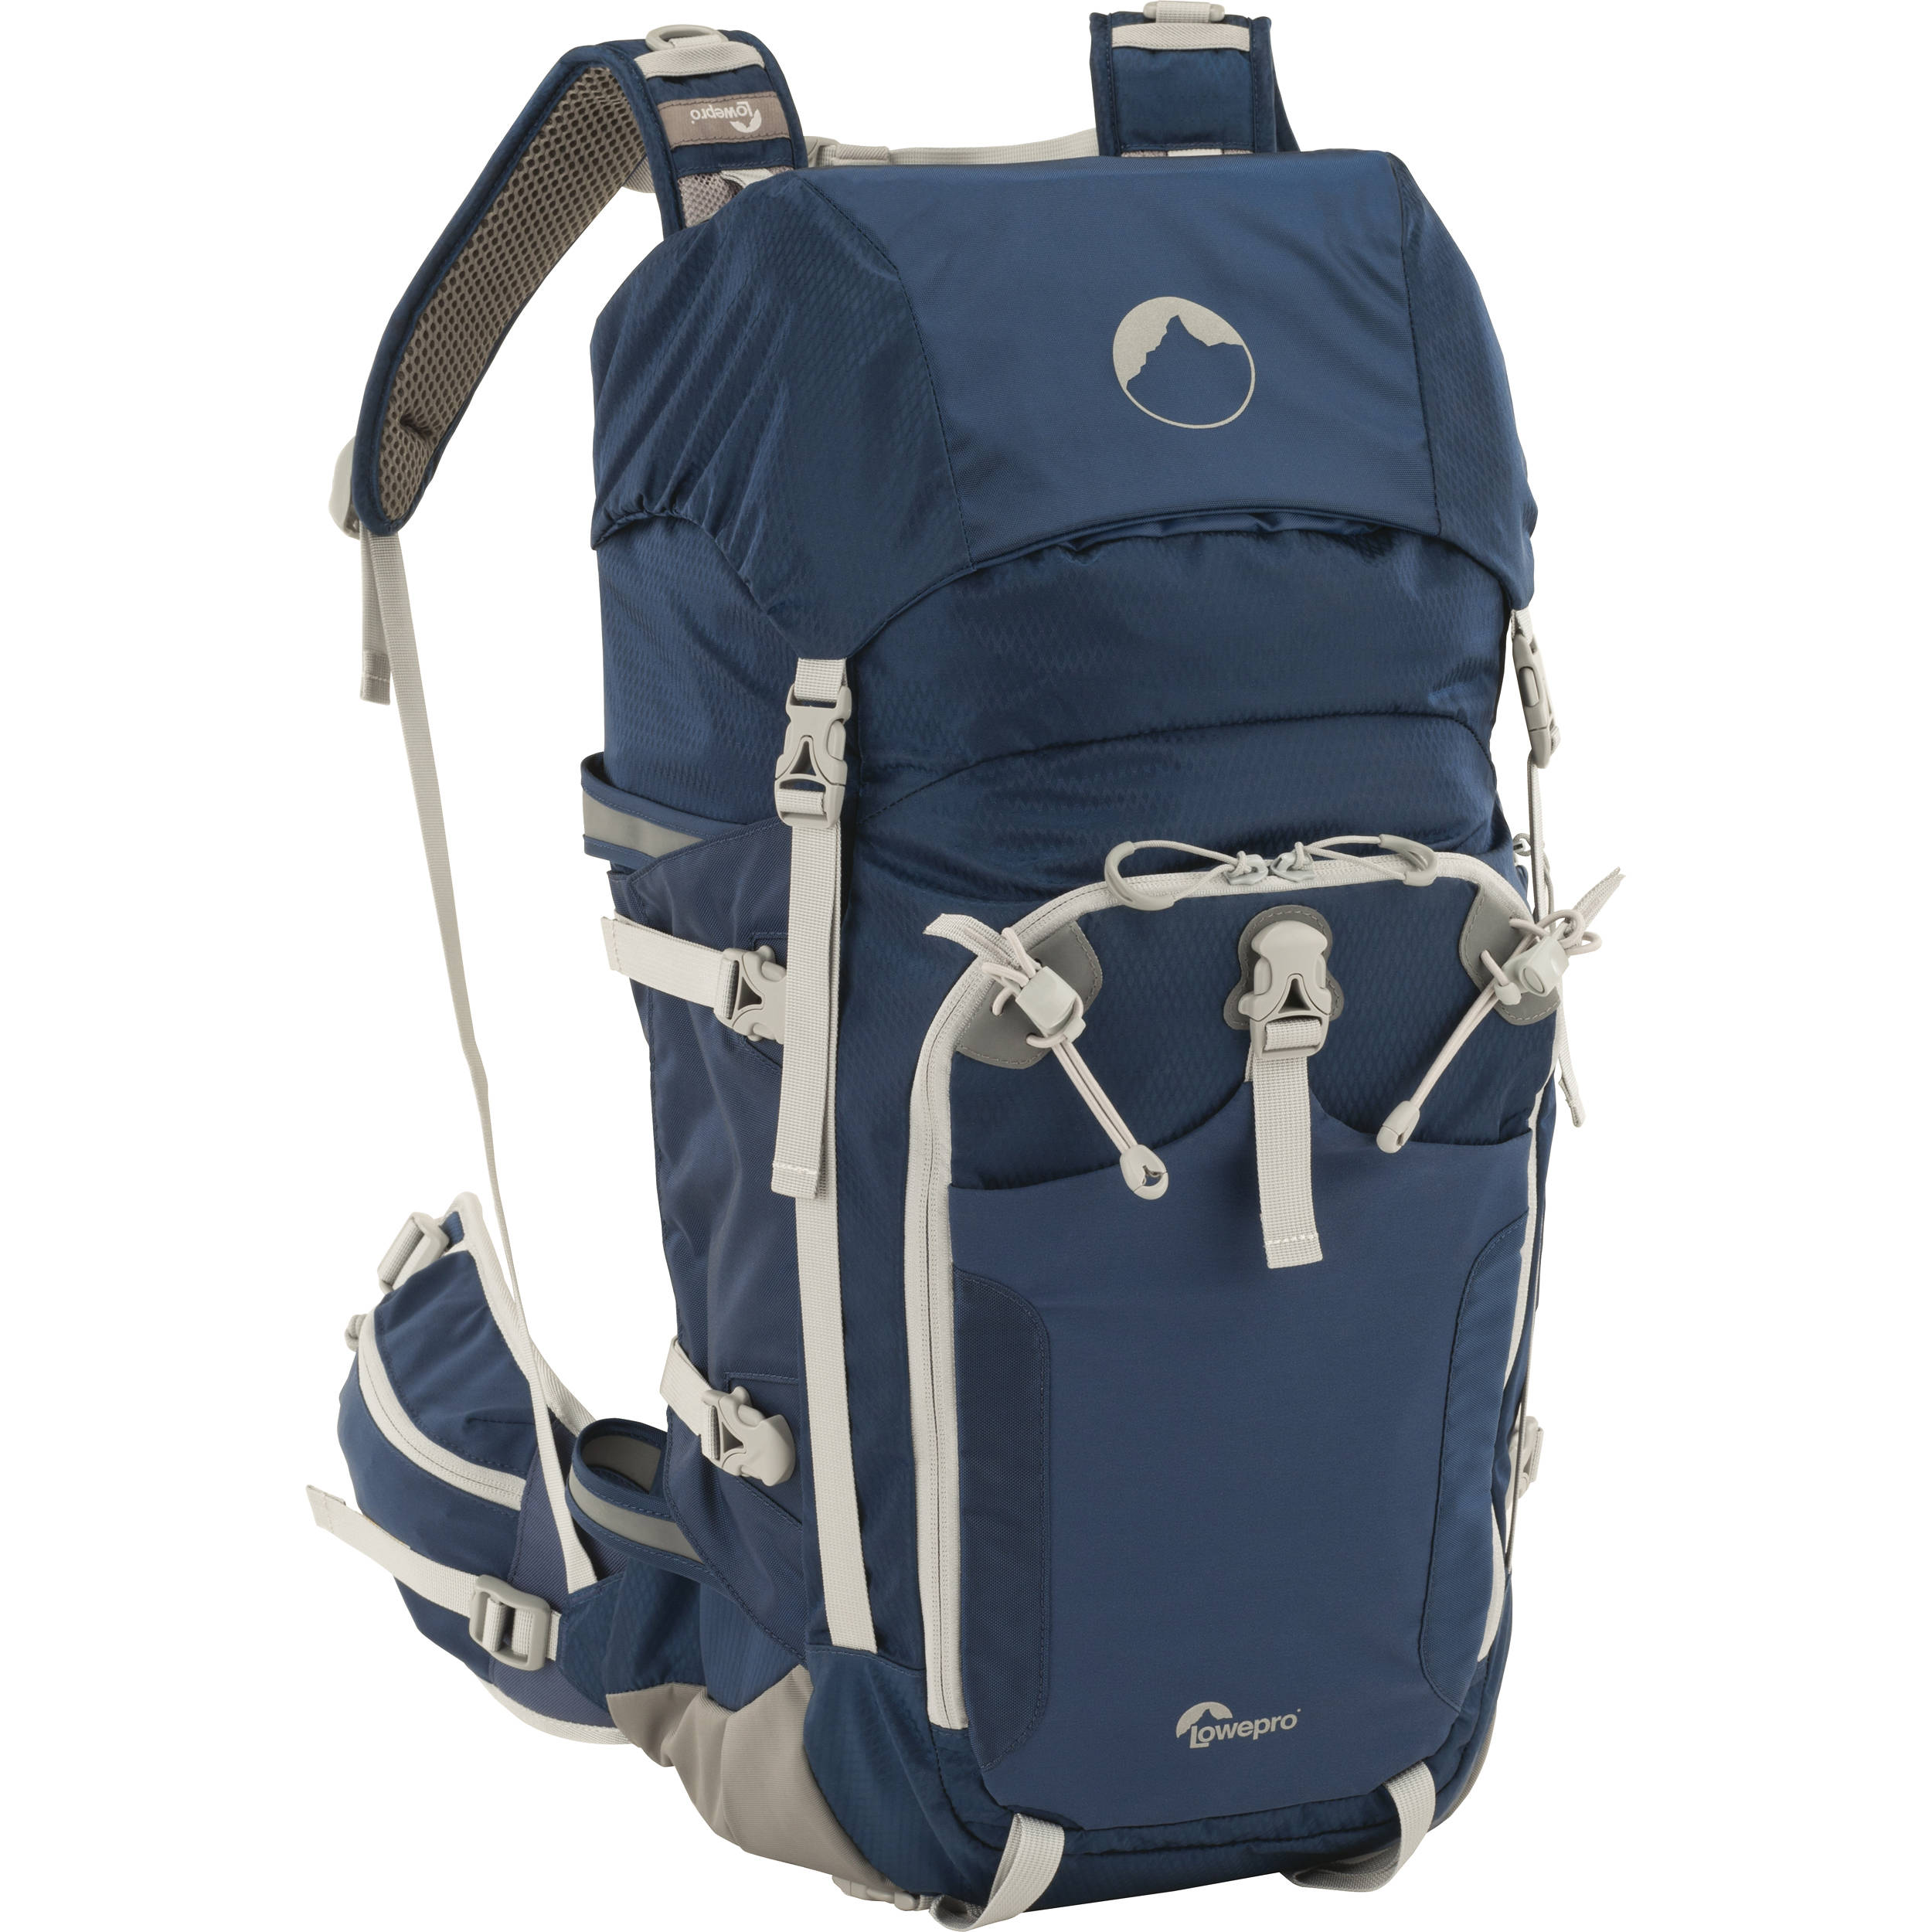 Lowepro Rover Pro 35l Aw Backpack Lp36447 Pww B Amp H Photo Video